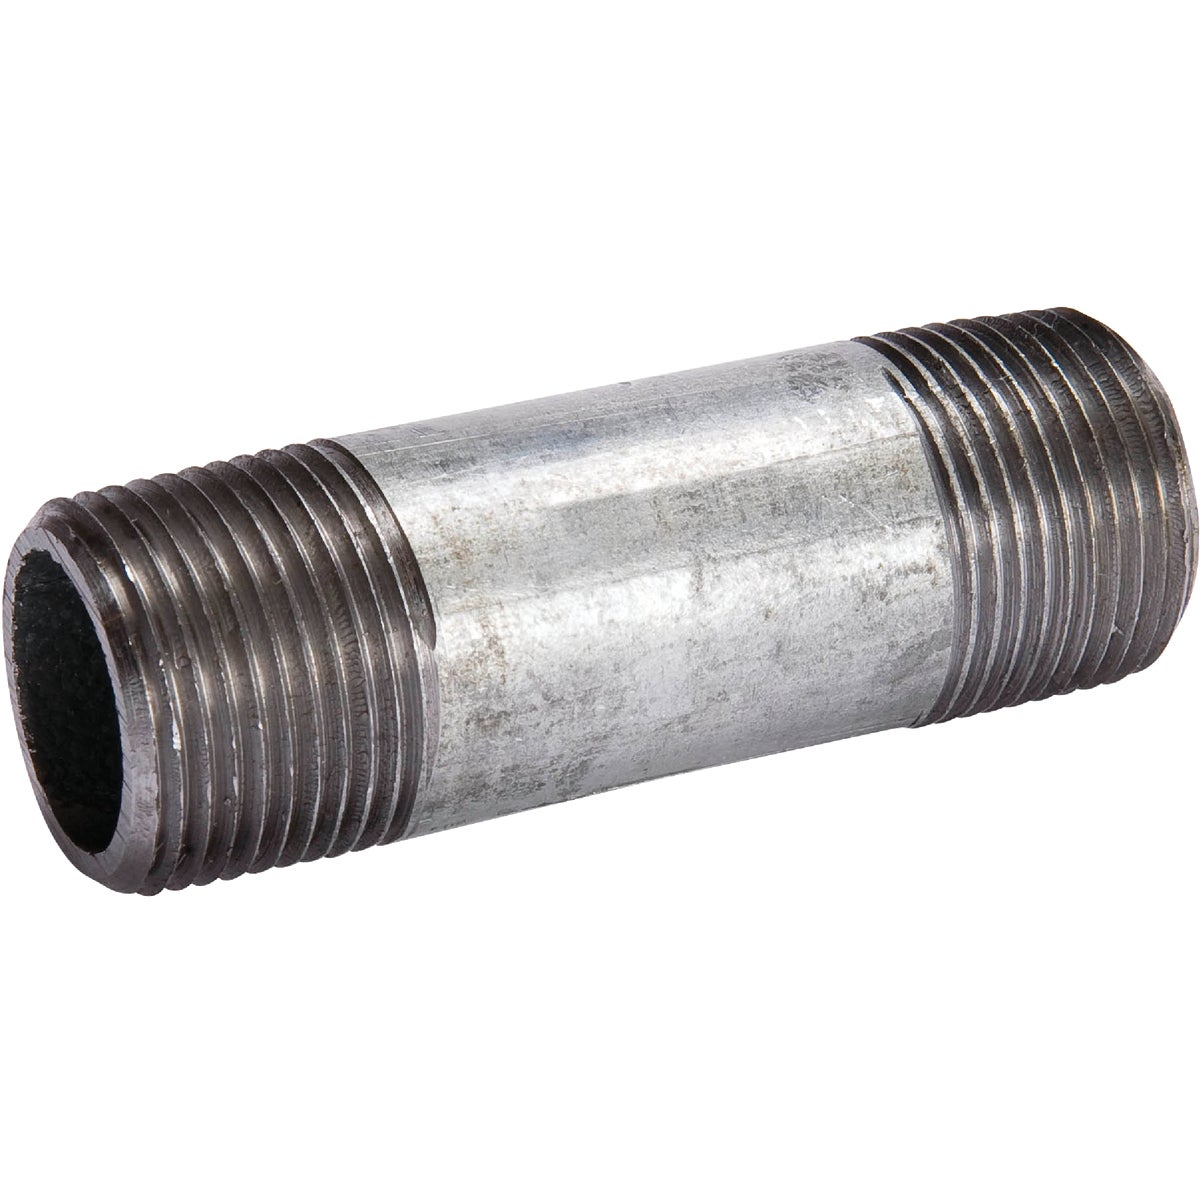 3/8X5-1/2 GALV NIPPLE - 10309 by Southland Pipe Nippl